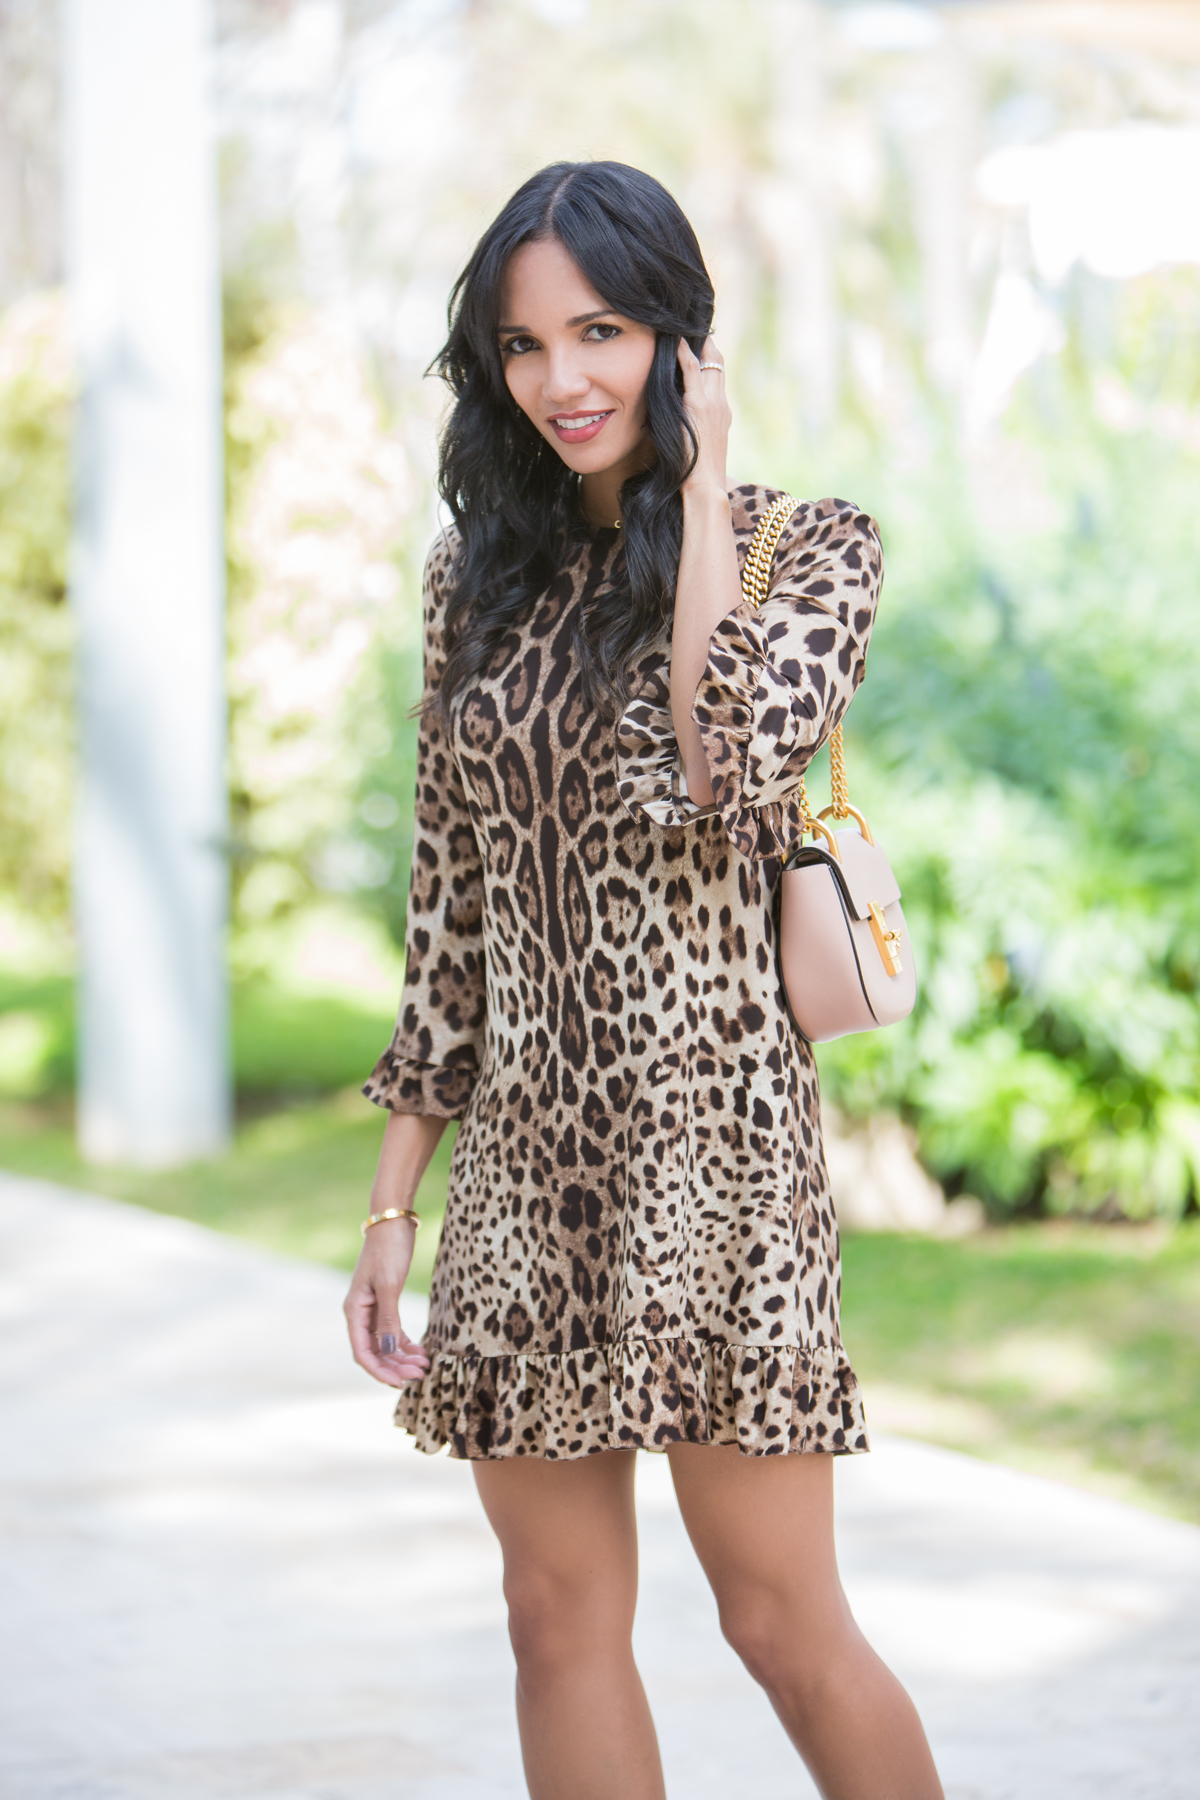 Vestido leopardo print Carolina Personal Shopper blog